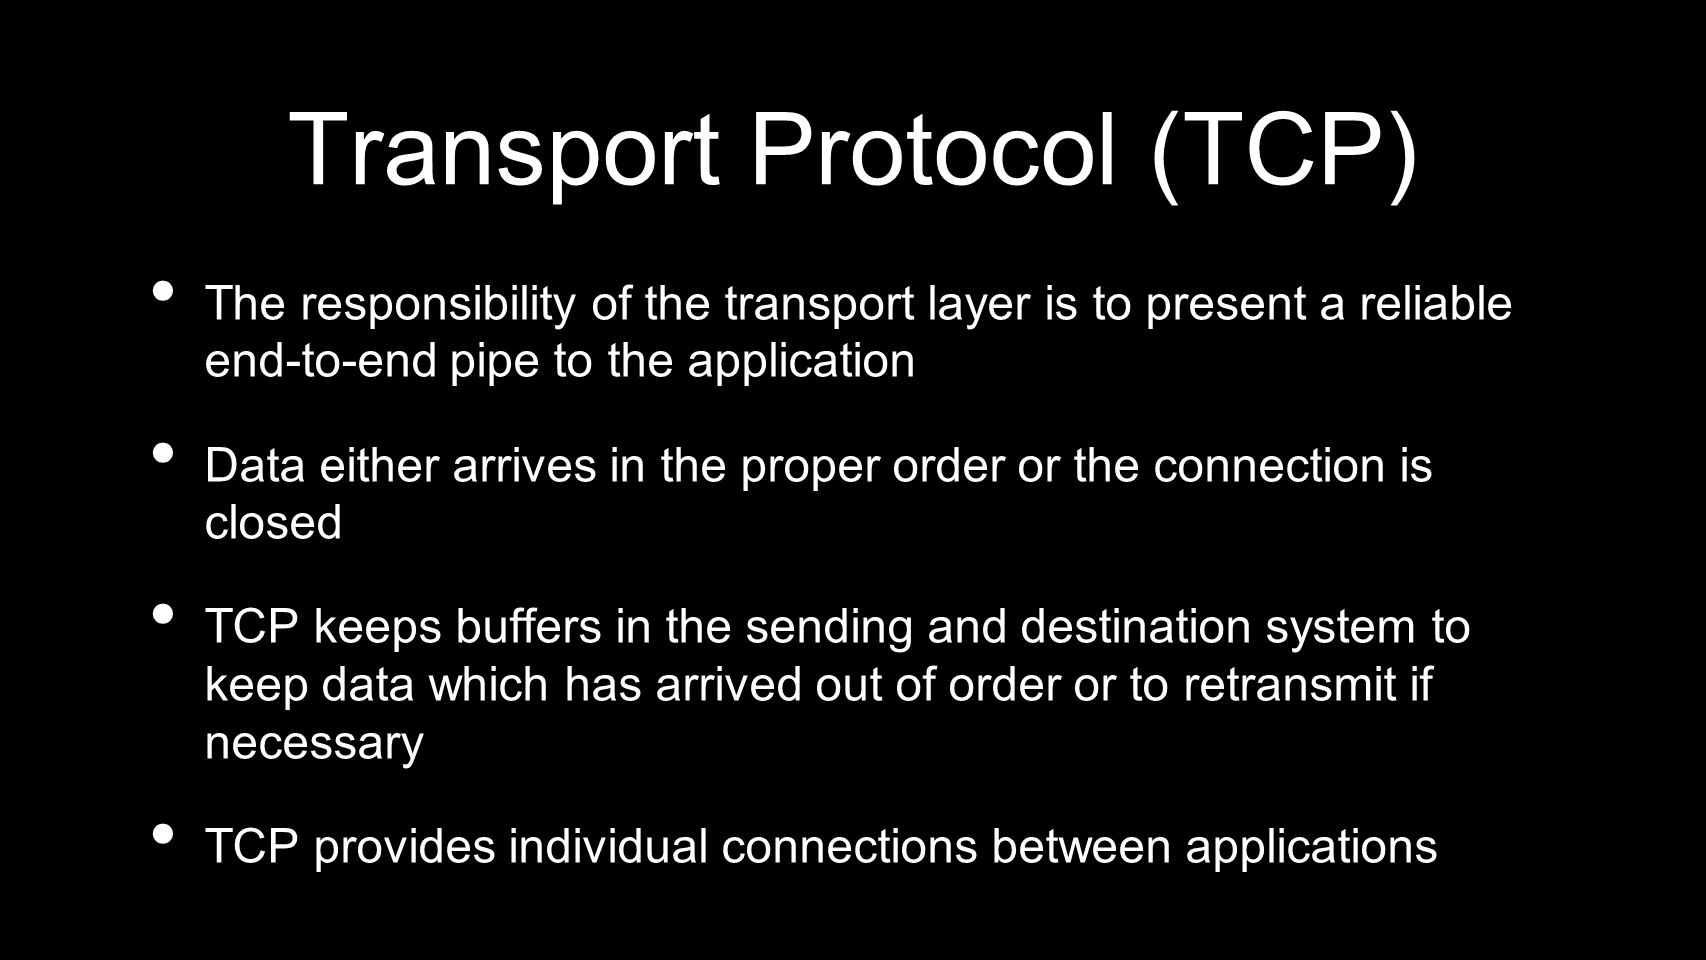 Transport Protocol (TCP) The responsibility of the transport layer is to present a reliable end-to-end pipe to the application Data either arrives in